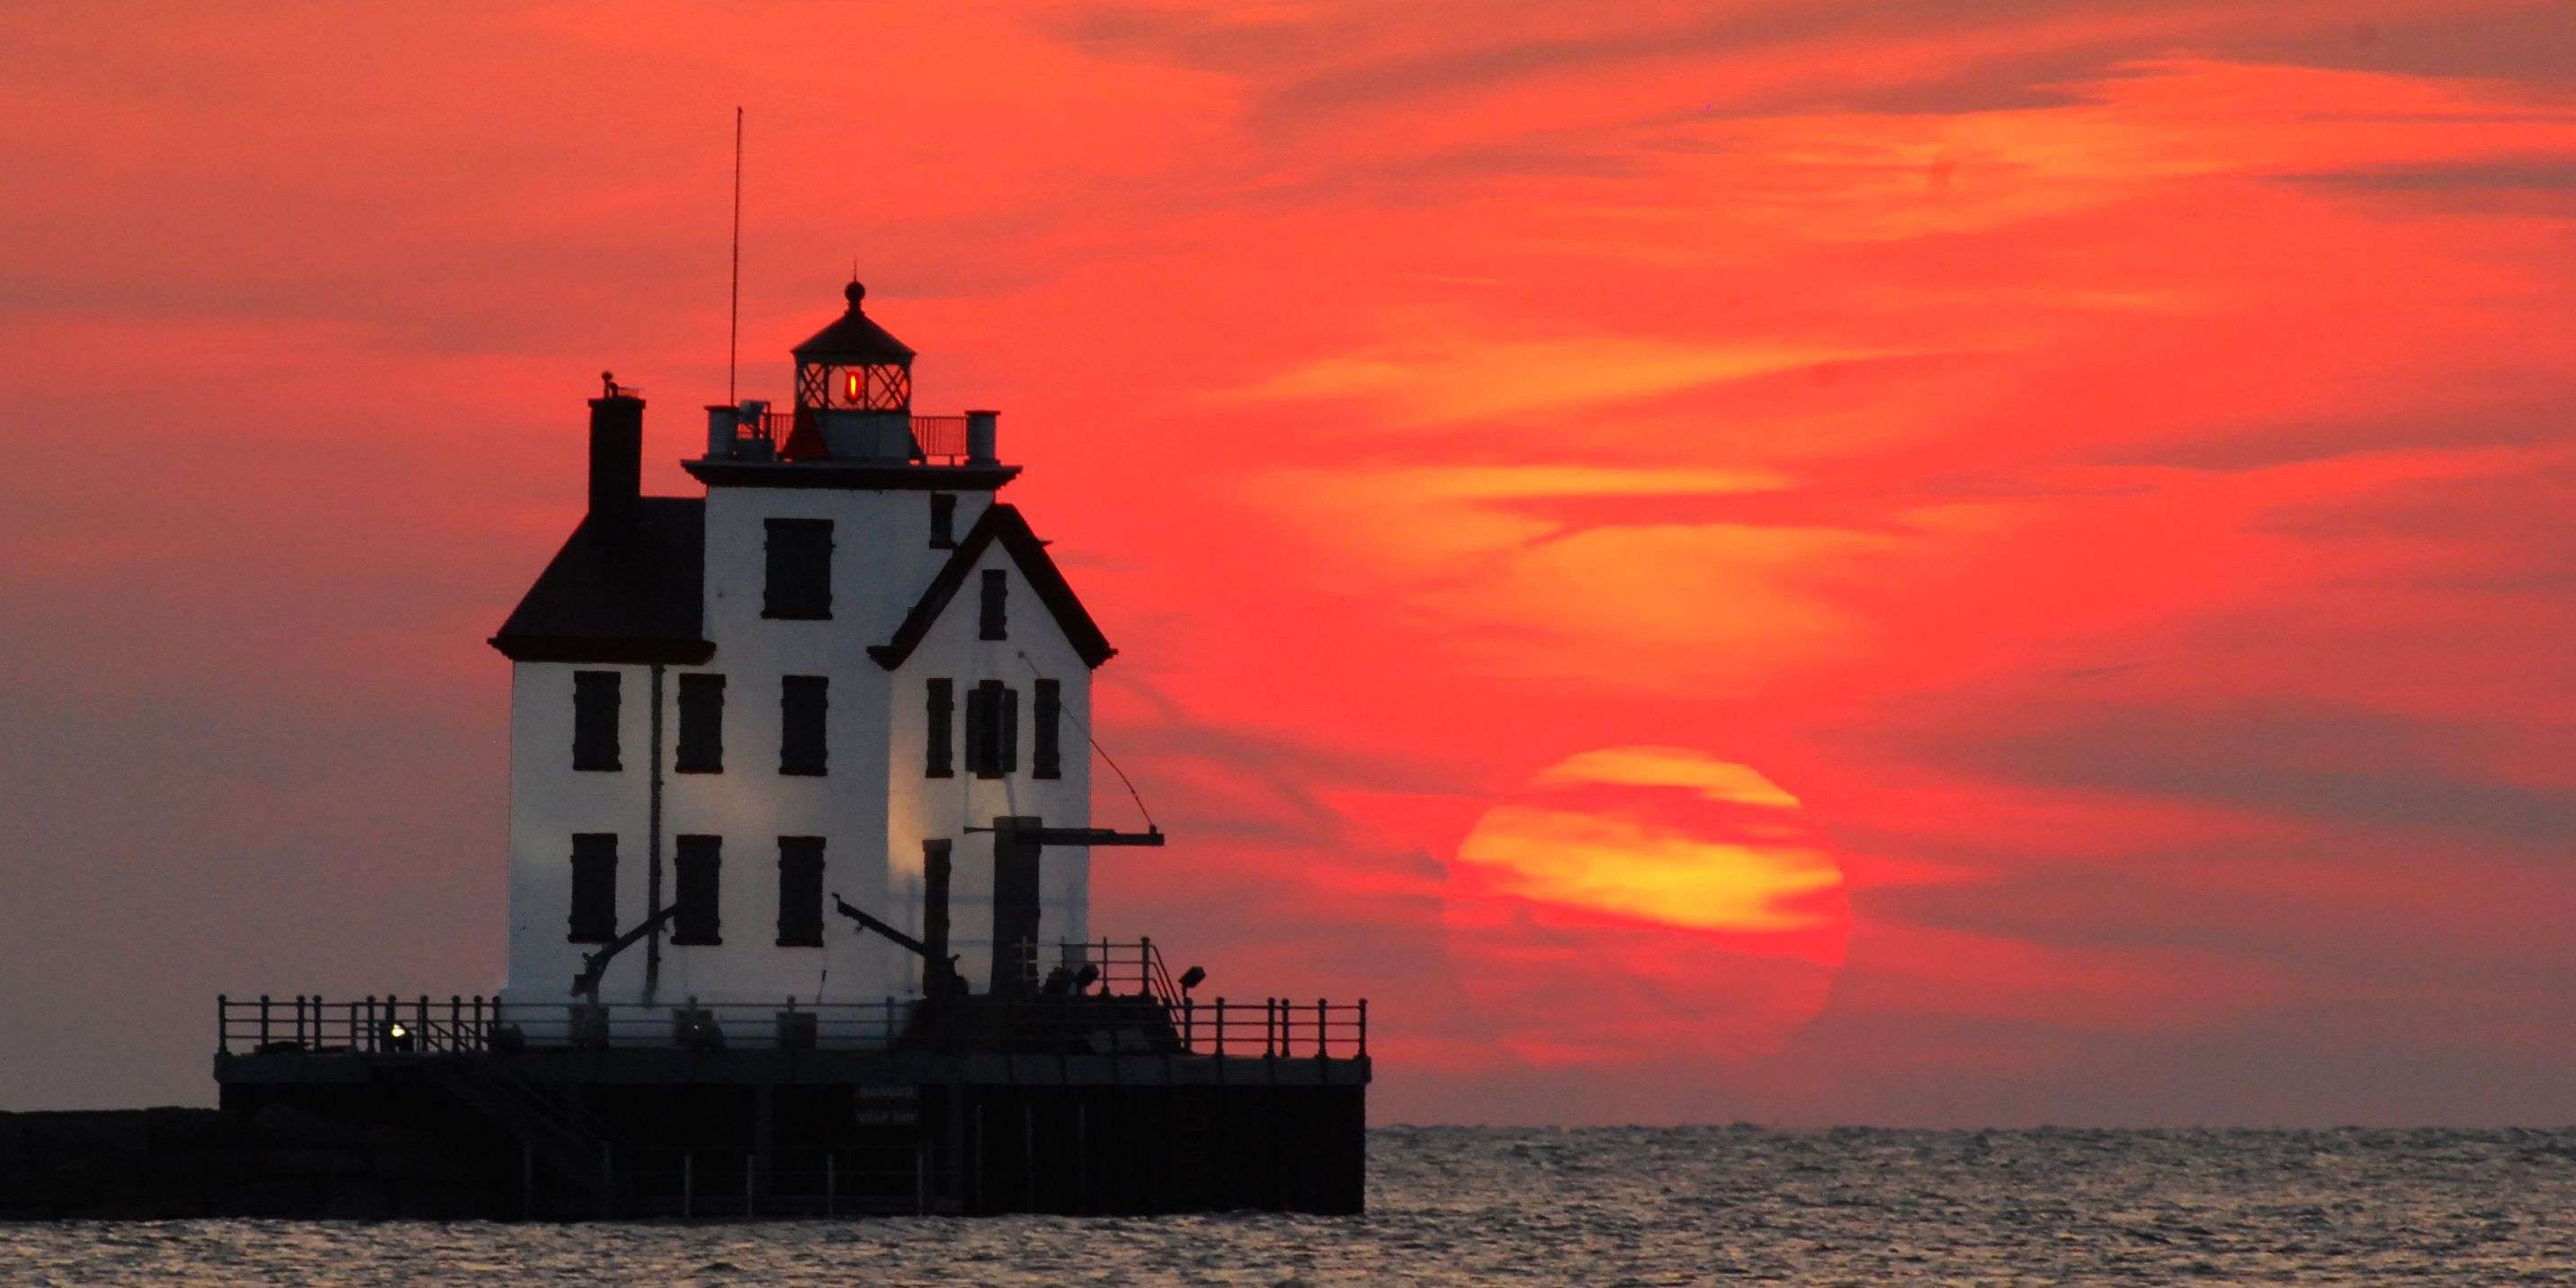 This charming lighthouse was saved from demolition in the 1960s and is today one of the most beloved landmarks in Lorain, Ohio.   - CountryLiving.com